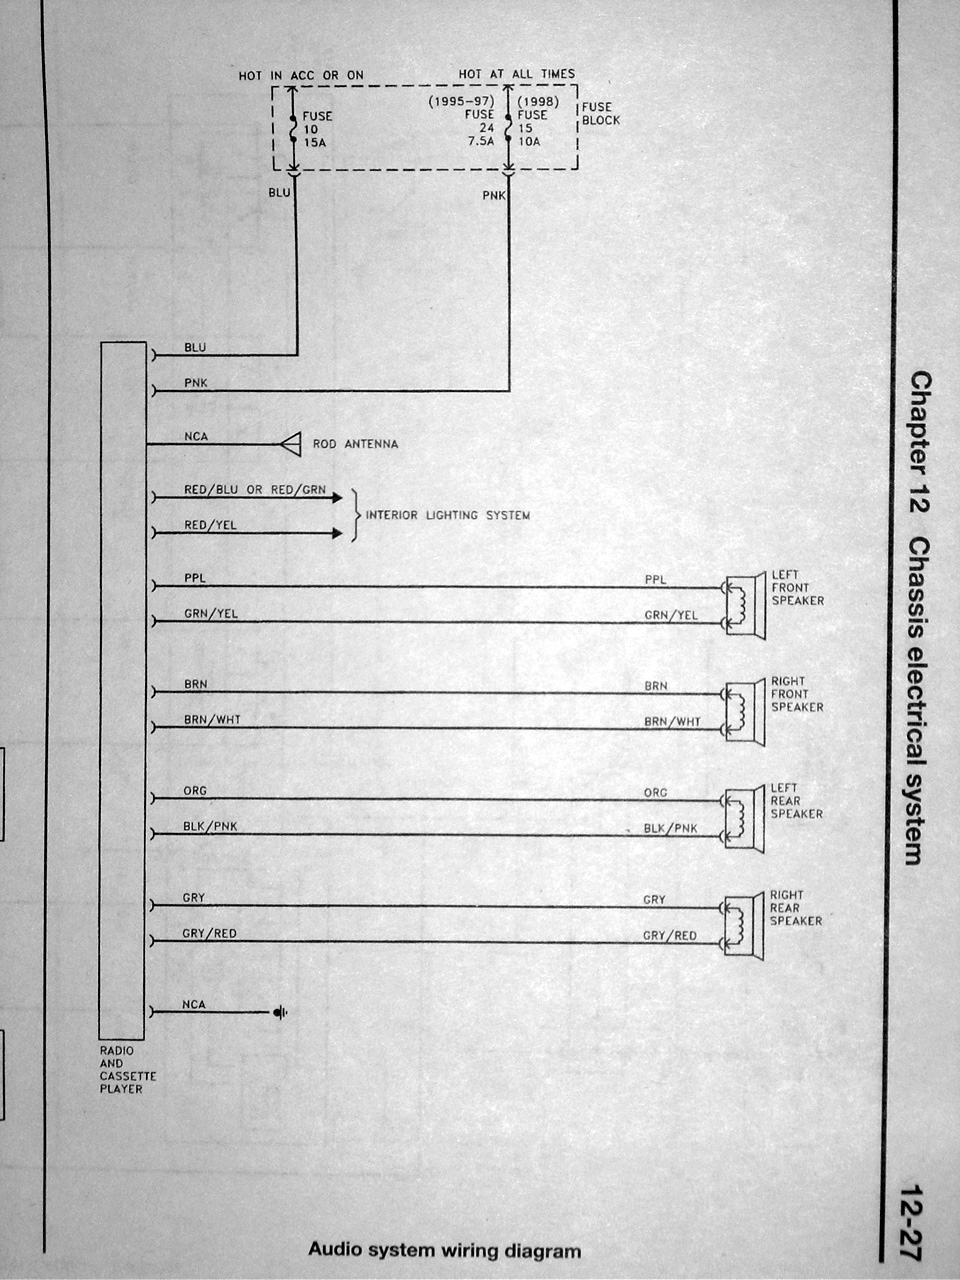 DSC01849 wiring diagram thread *useful info* nissan forum 2003 nissan sentra wiring diagram at n-0.co